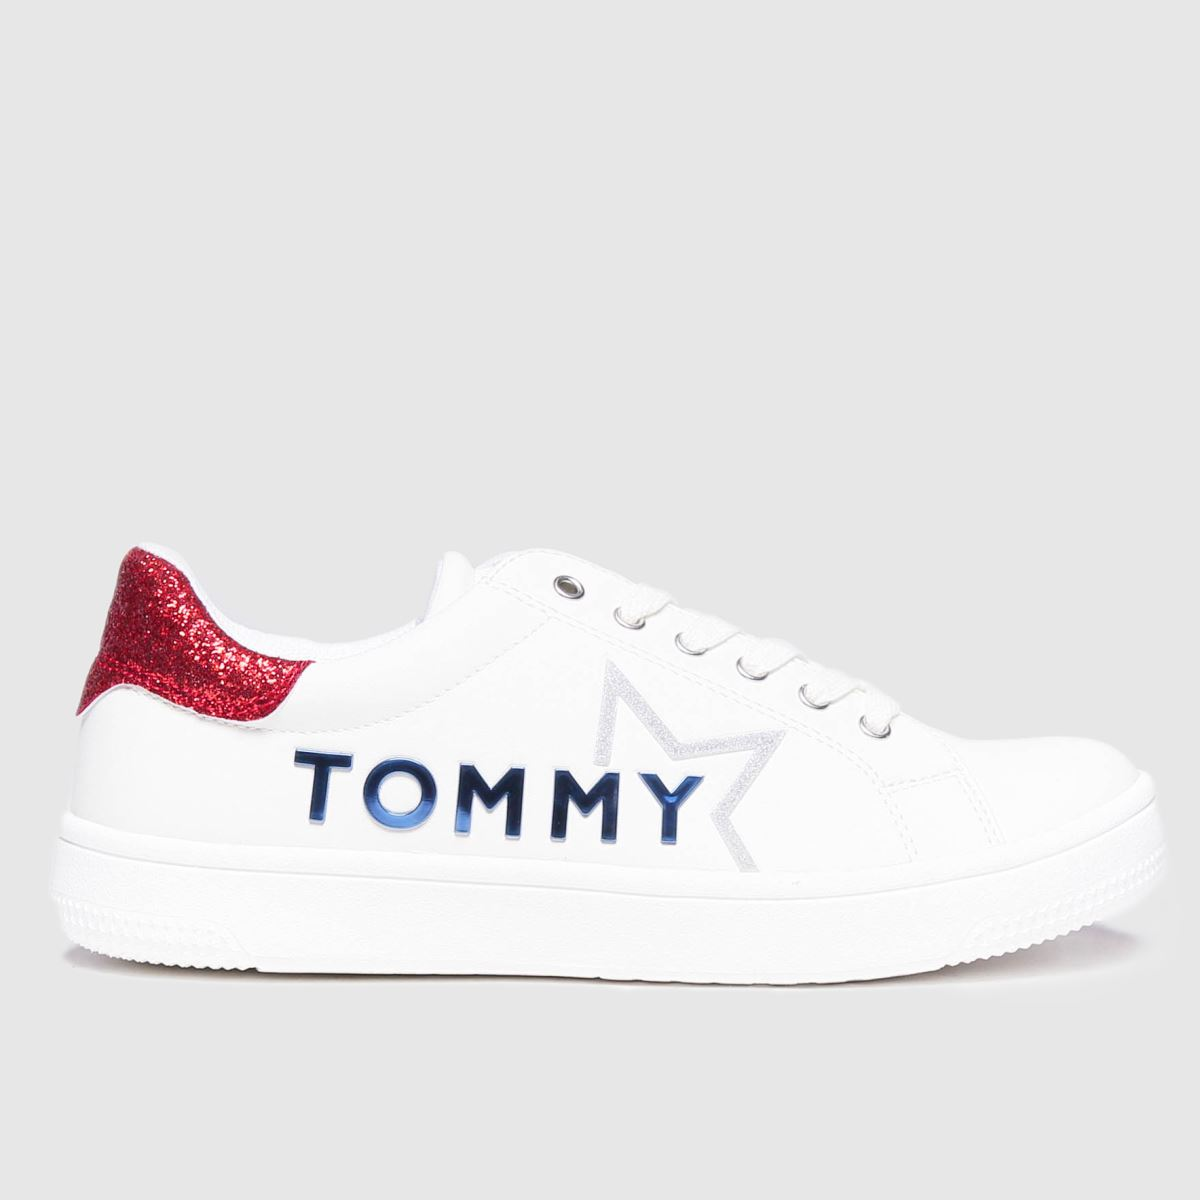 Tommy Hilfiger White & Red Low Cut Lace-up Sneaker Trainers Juni